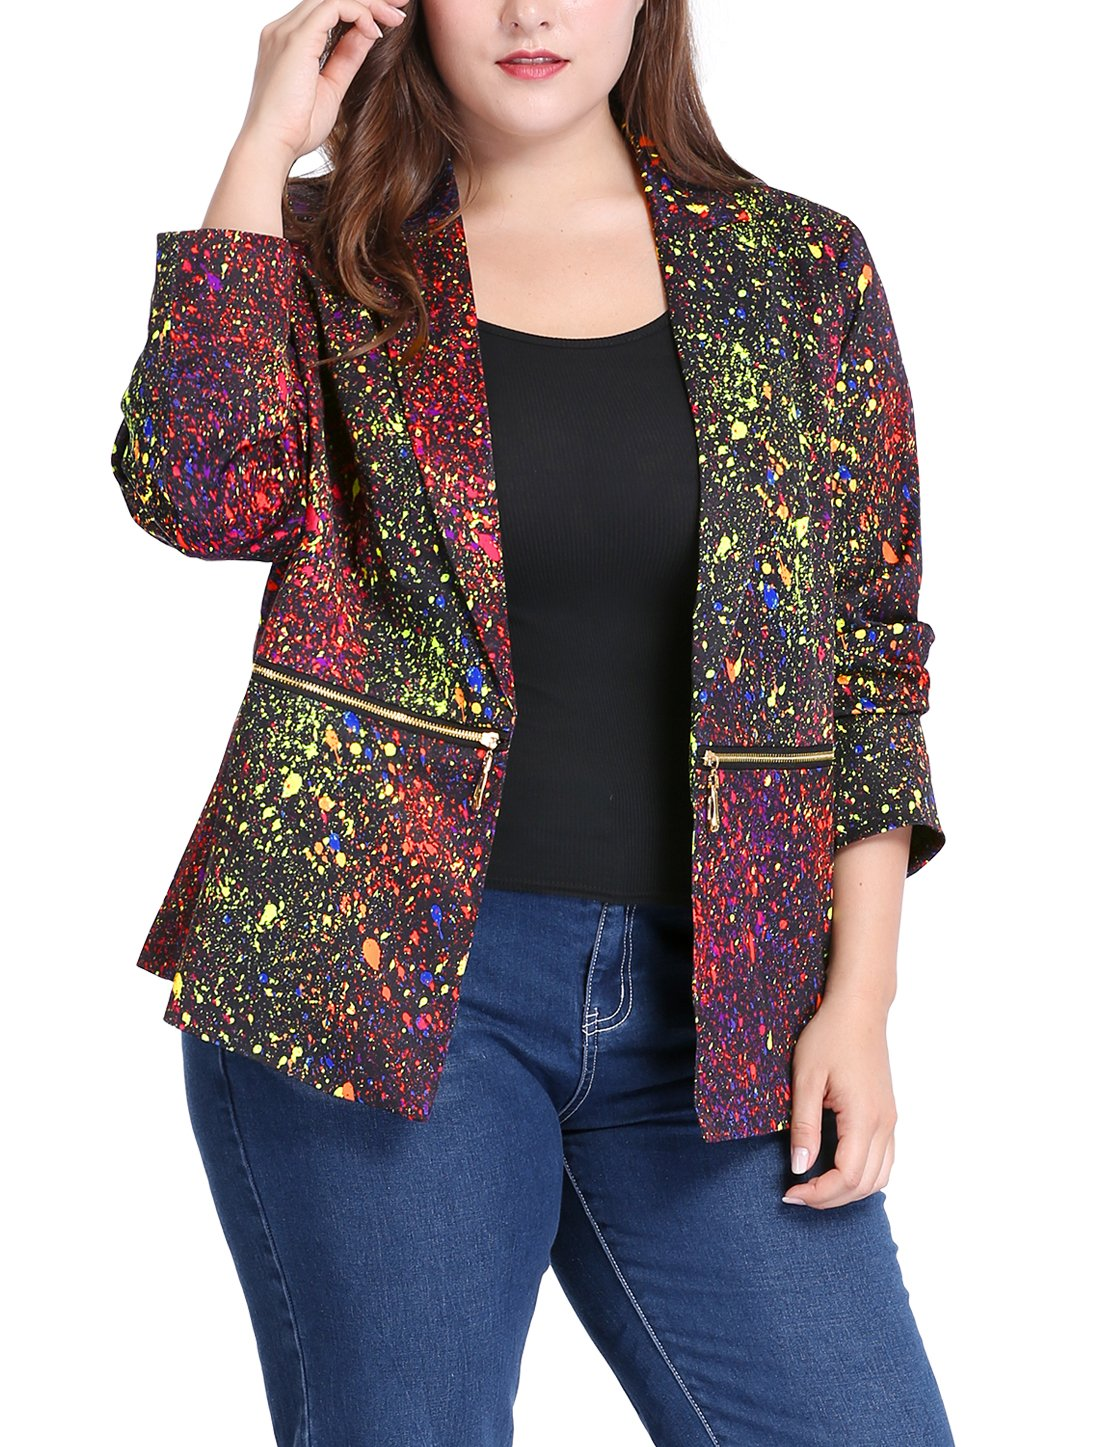 uxcell Women's Plus Size Zipper Long Sleeve Paint Splatter Printed Blazer 1X Black